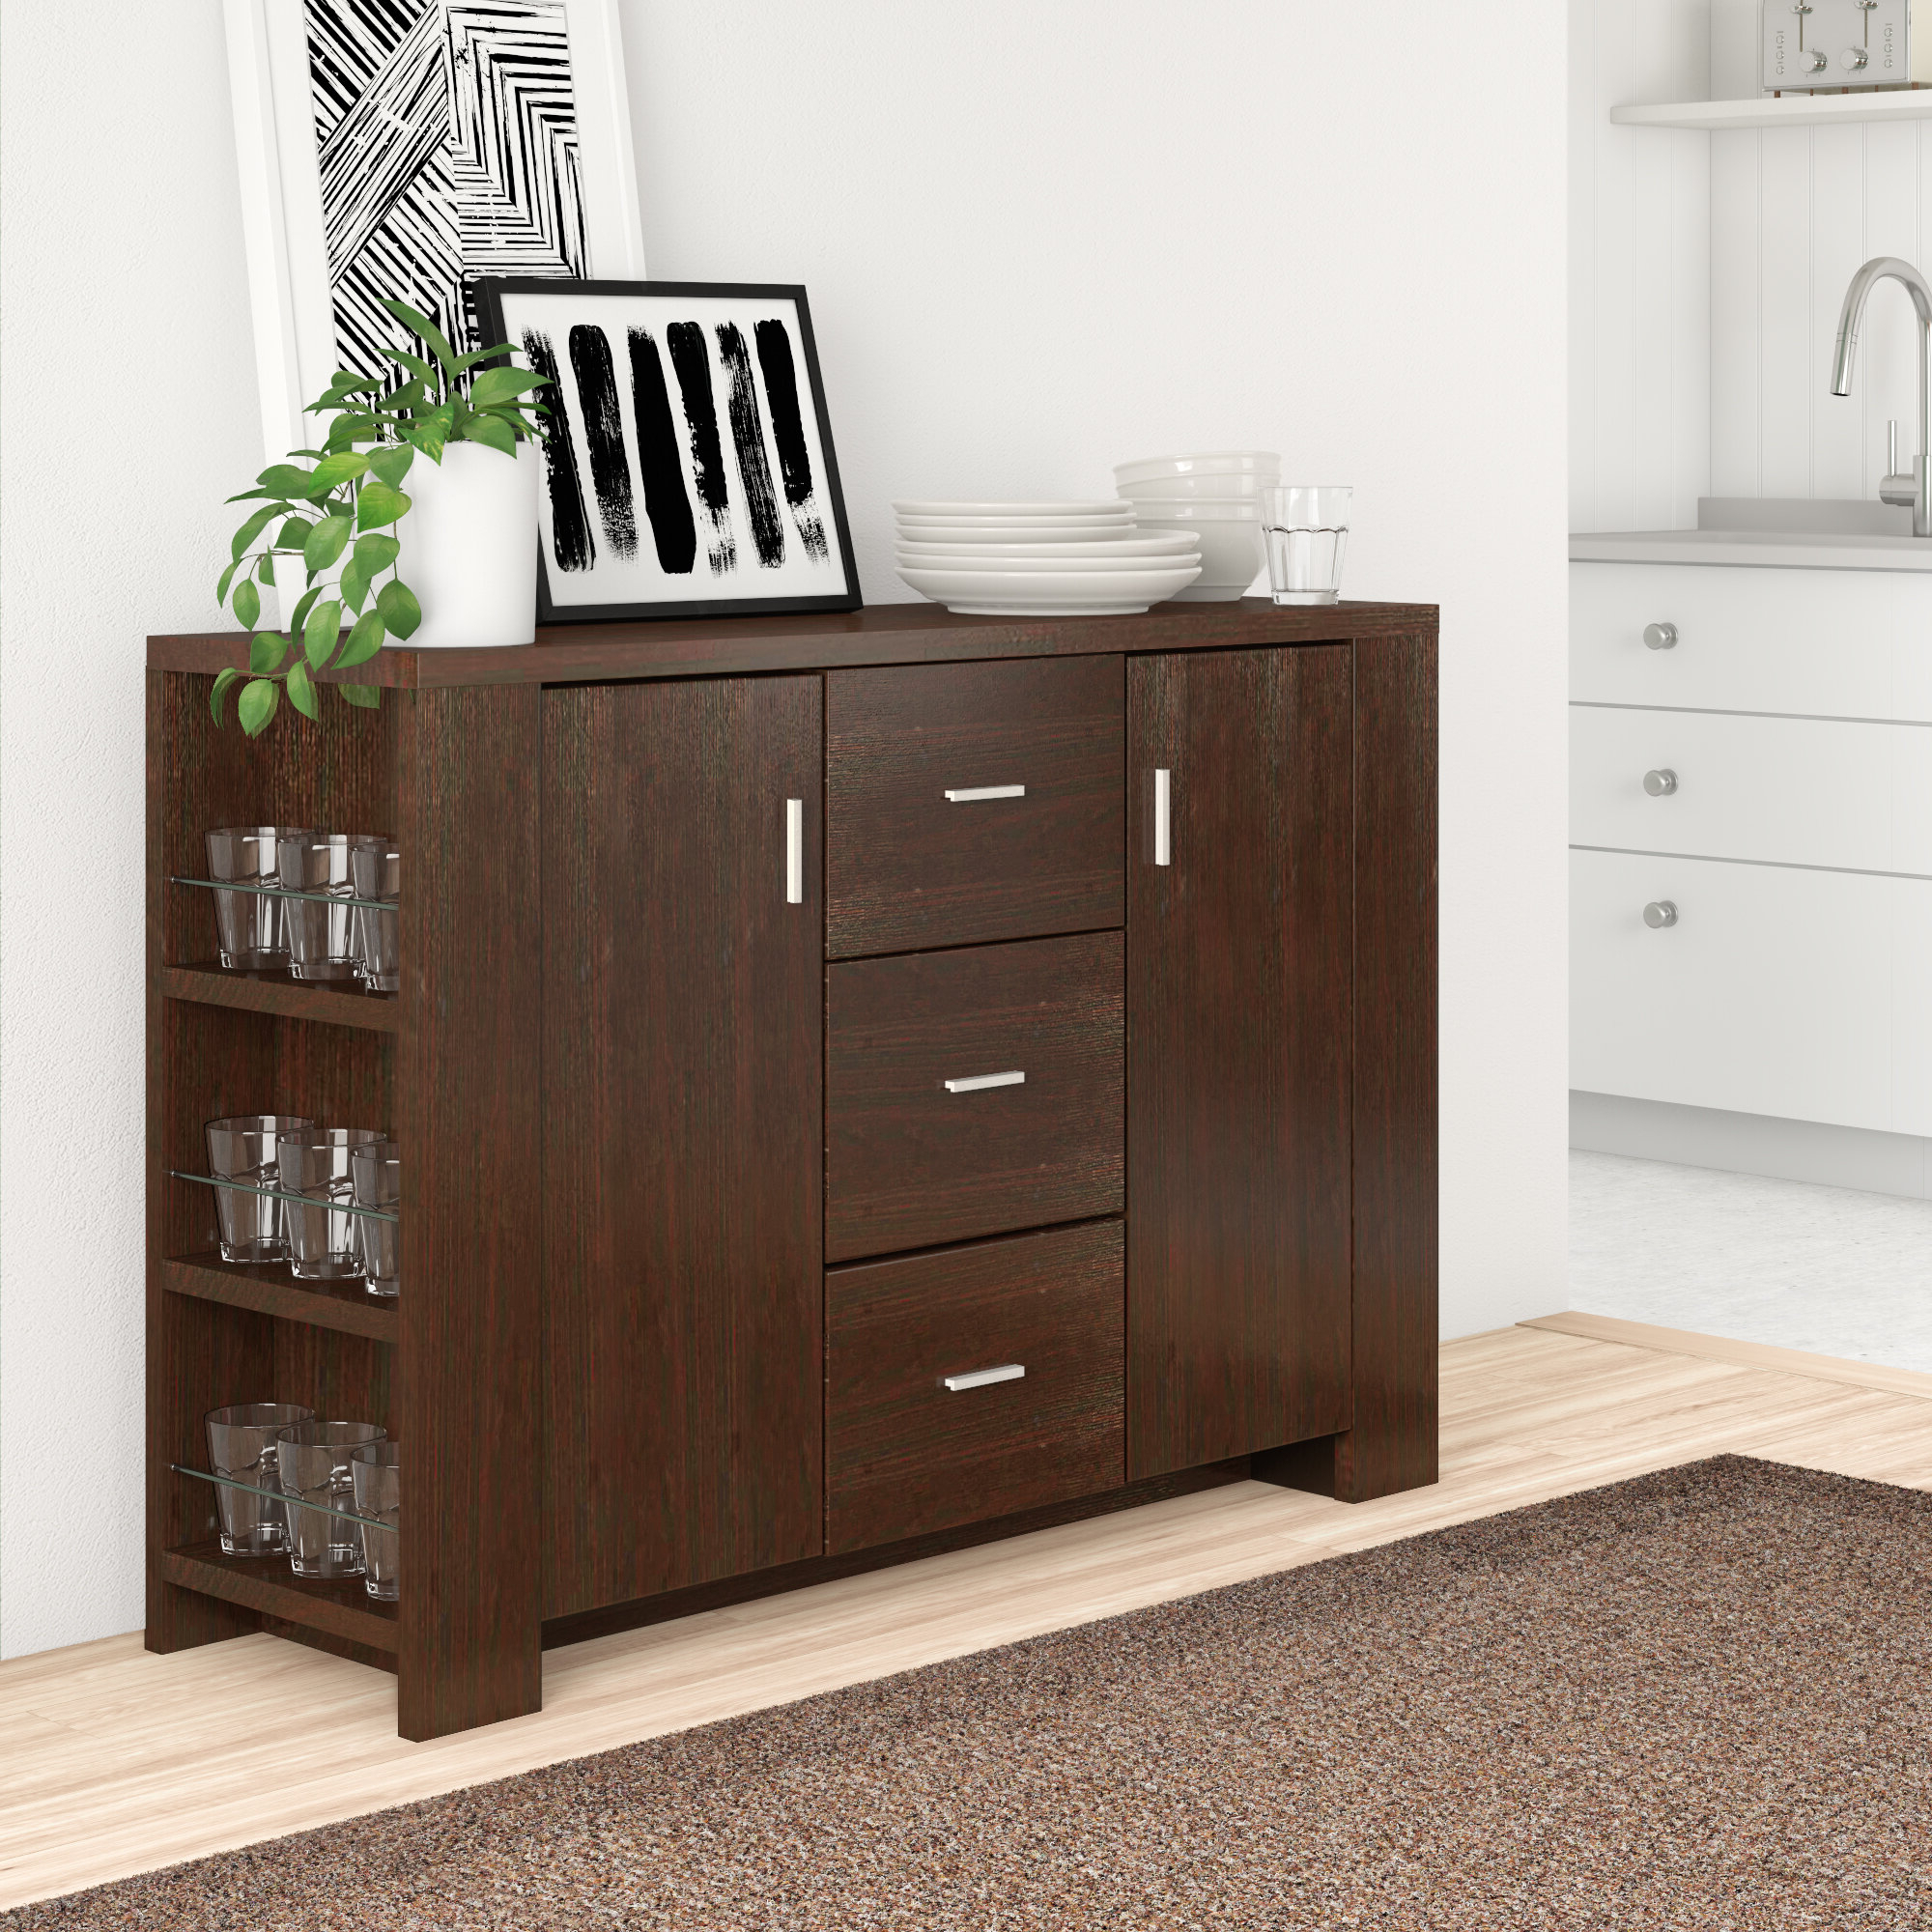 Solid Wood Sideboards & Buffets You'll Love In 2019 | Wayfair With Regard To Medium Buffets With Wood Top (View 18 of 20)